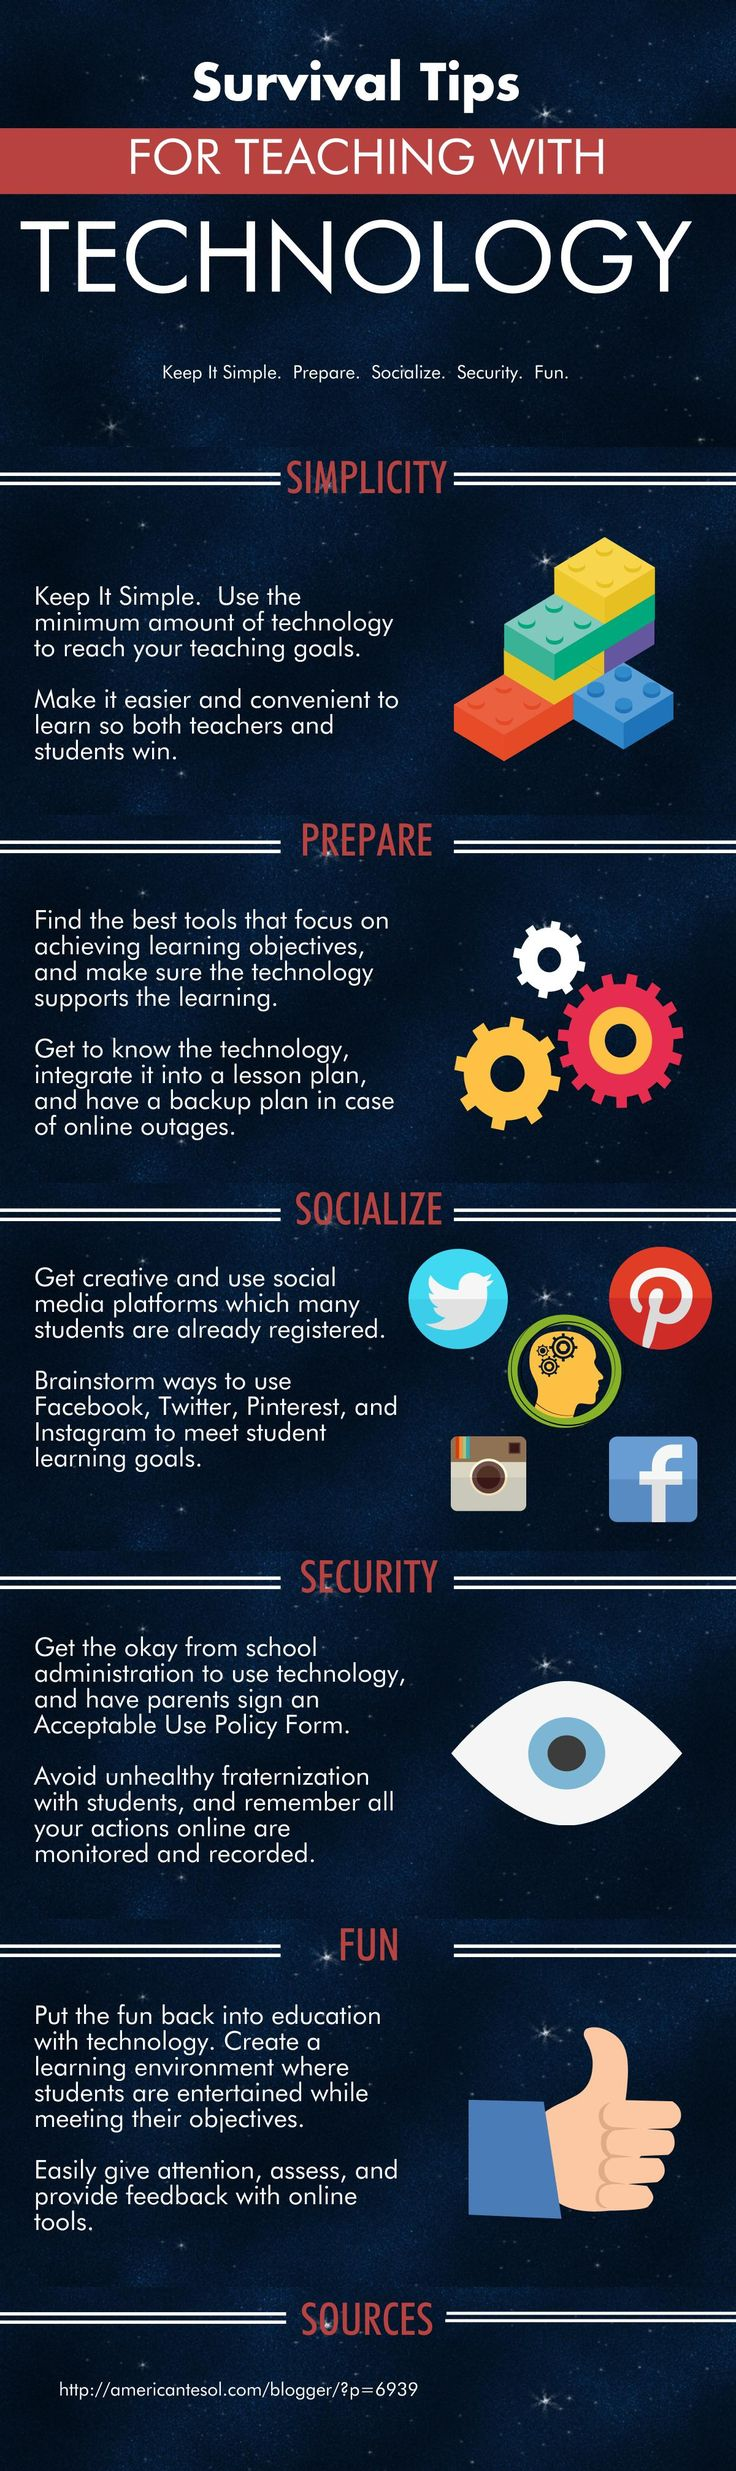 Survival Tips for #Teaching with #Technology